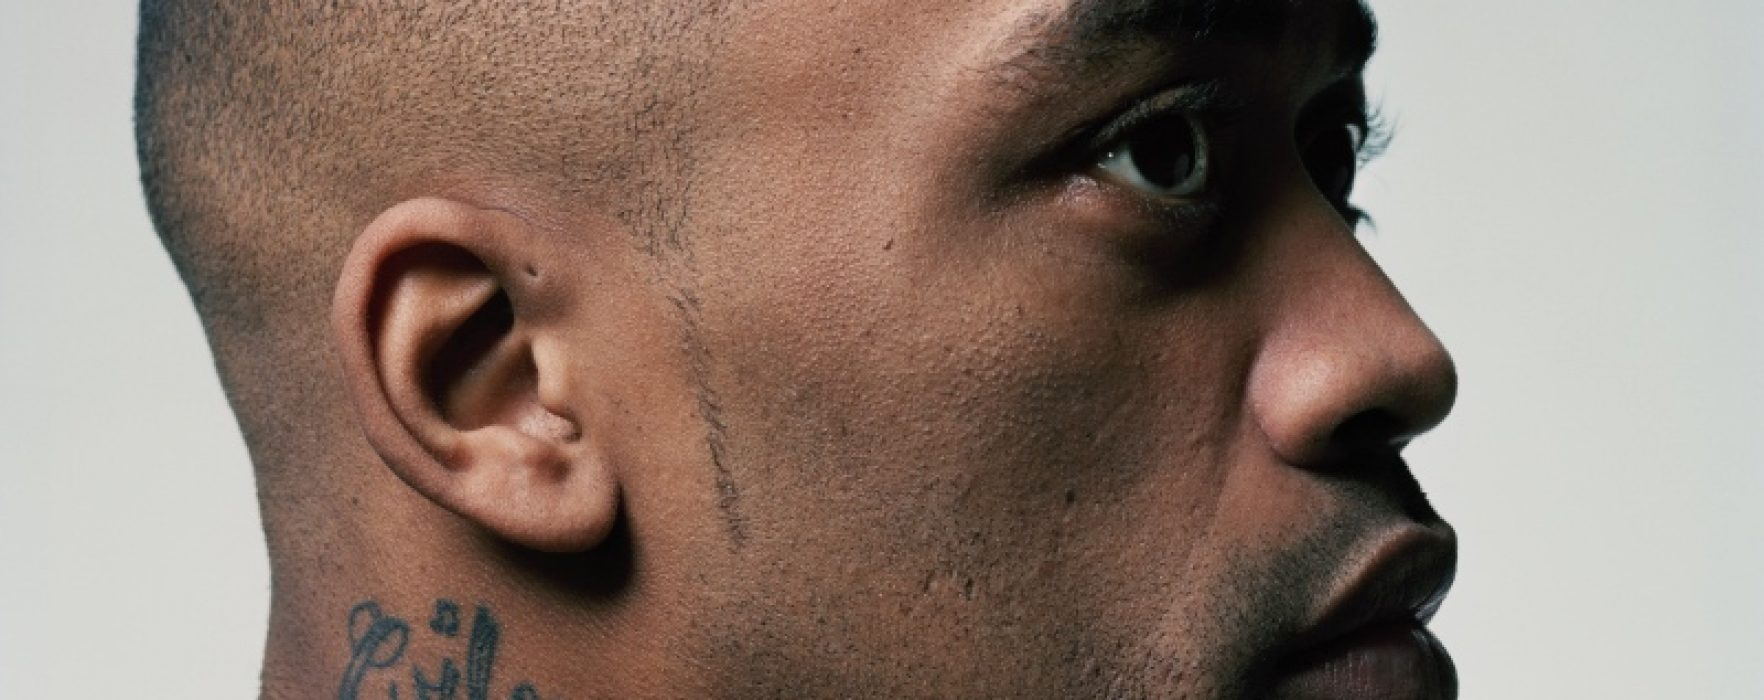 The Godfather of grime comes to Manchester!